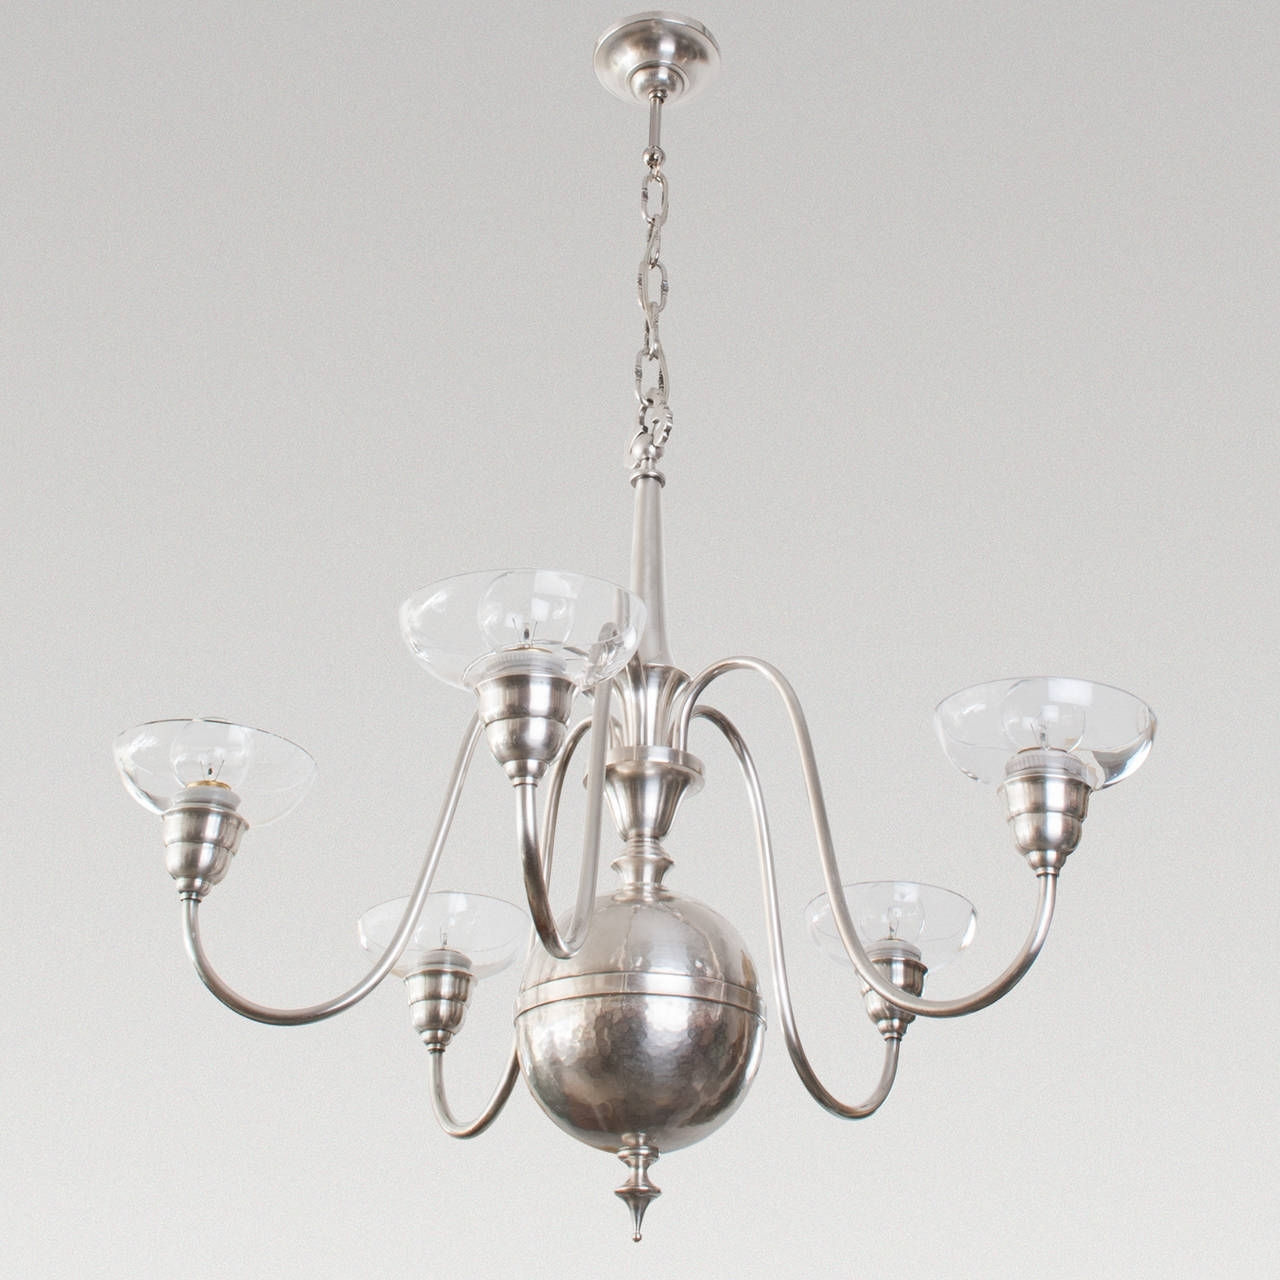 Famous Modern Silver Chandelier : Chandelier Gallery Intended For Modern Silver Chandelier (View 8 of 15)